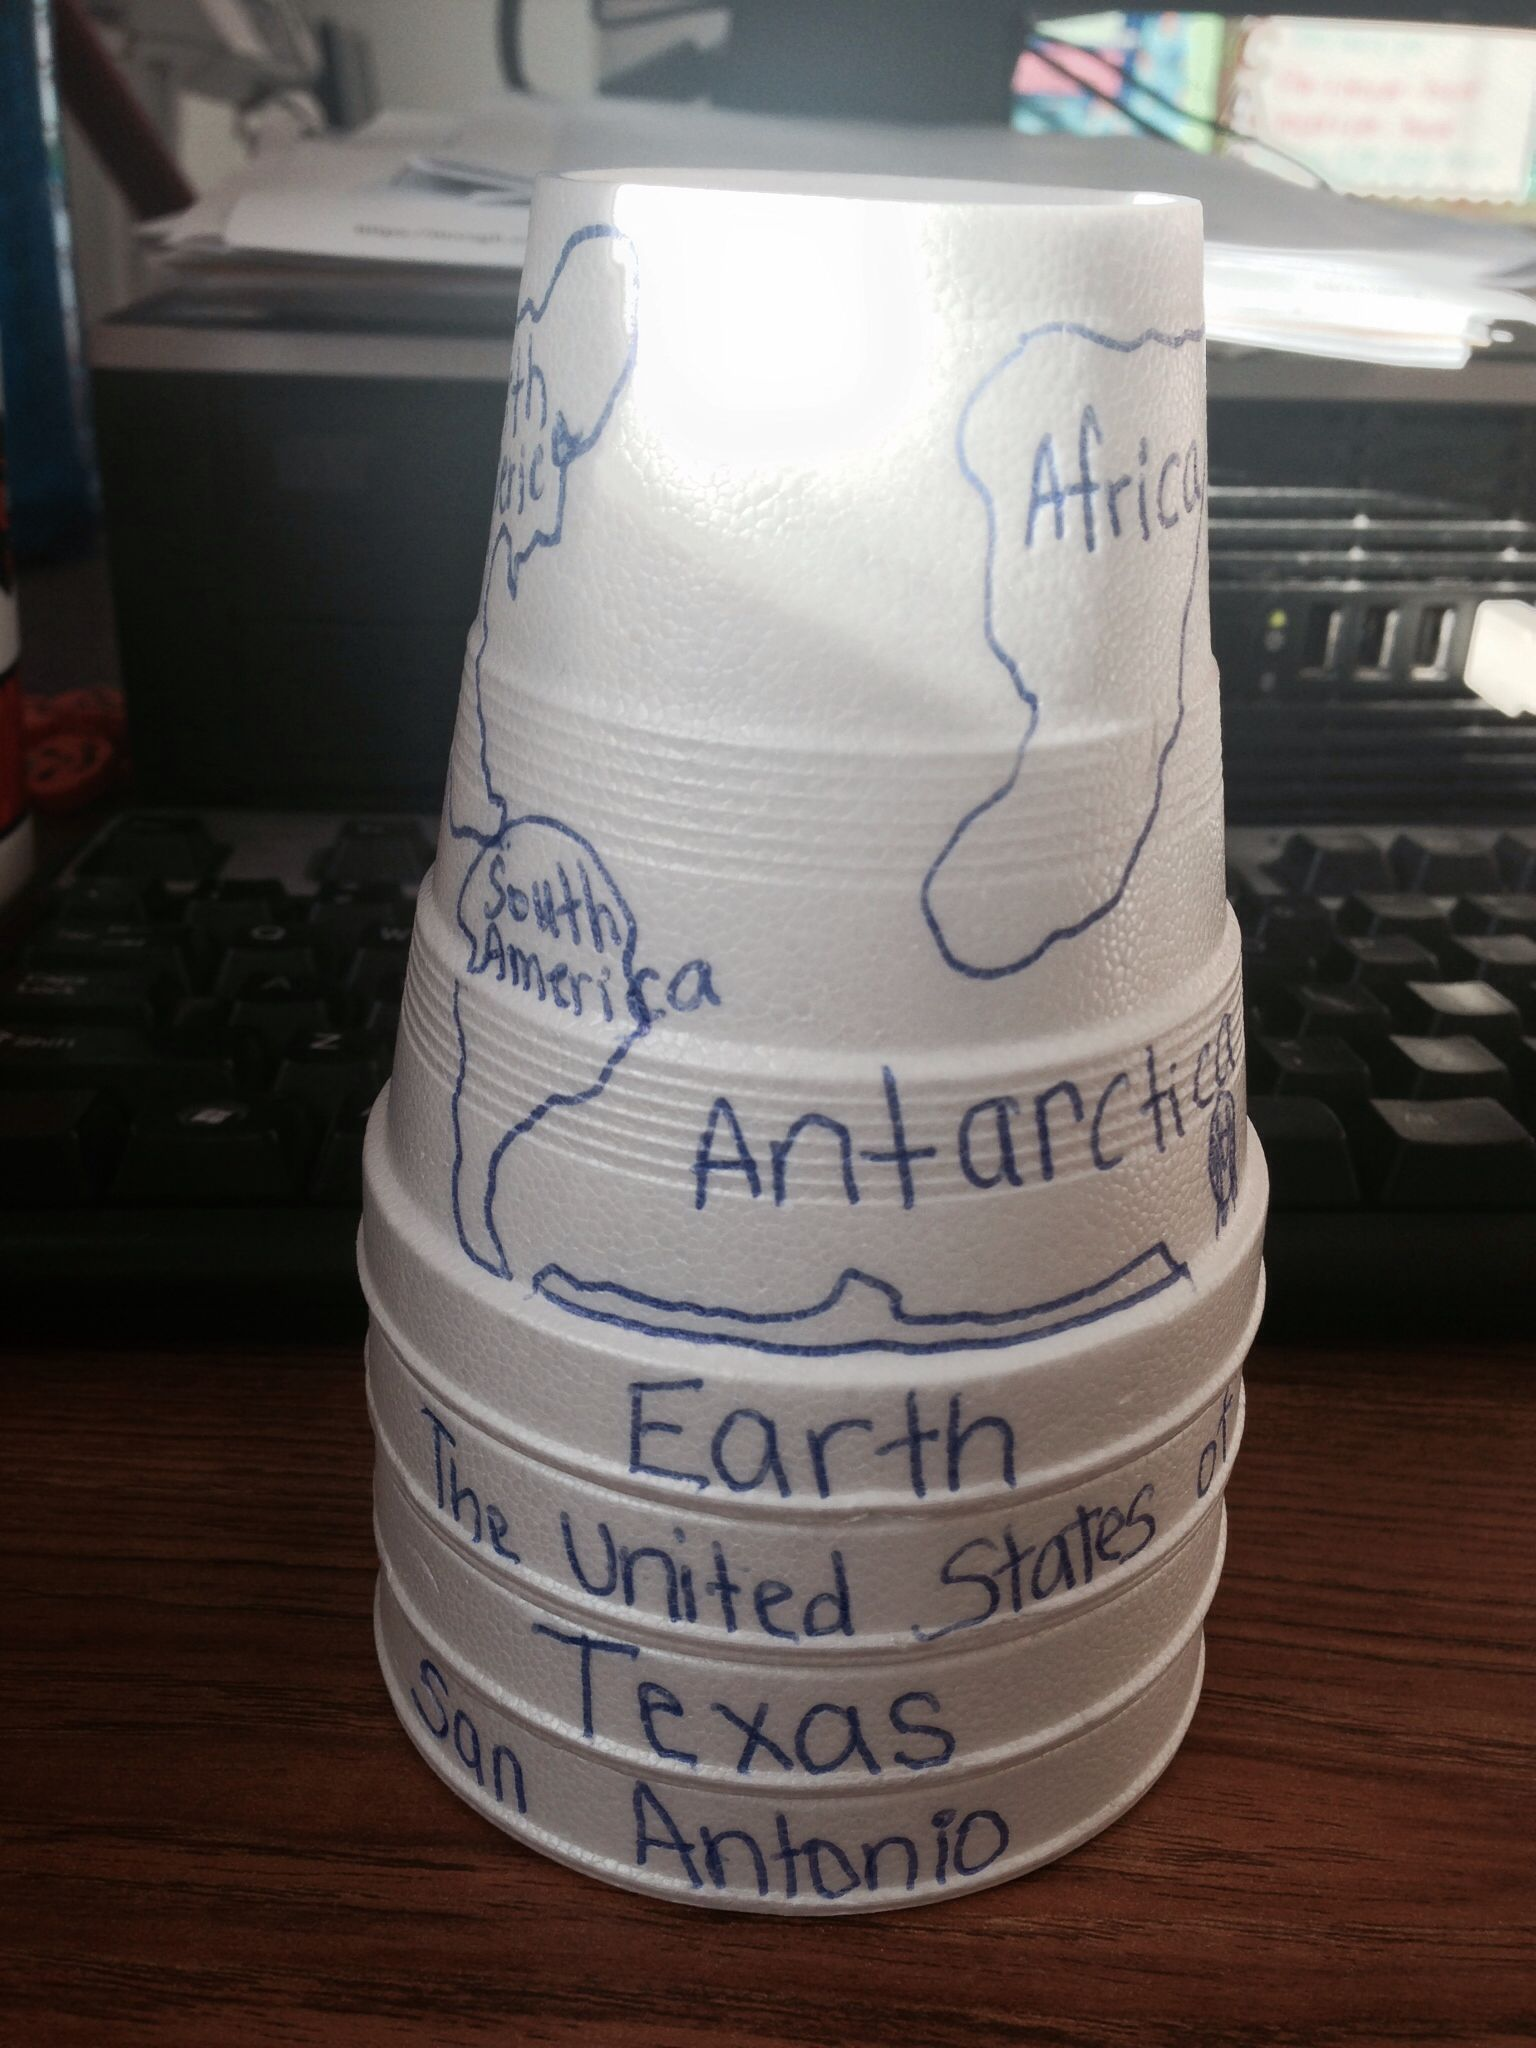 Idea: Social Studies community cups - students can visualize the microcosm of a city on the globe.